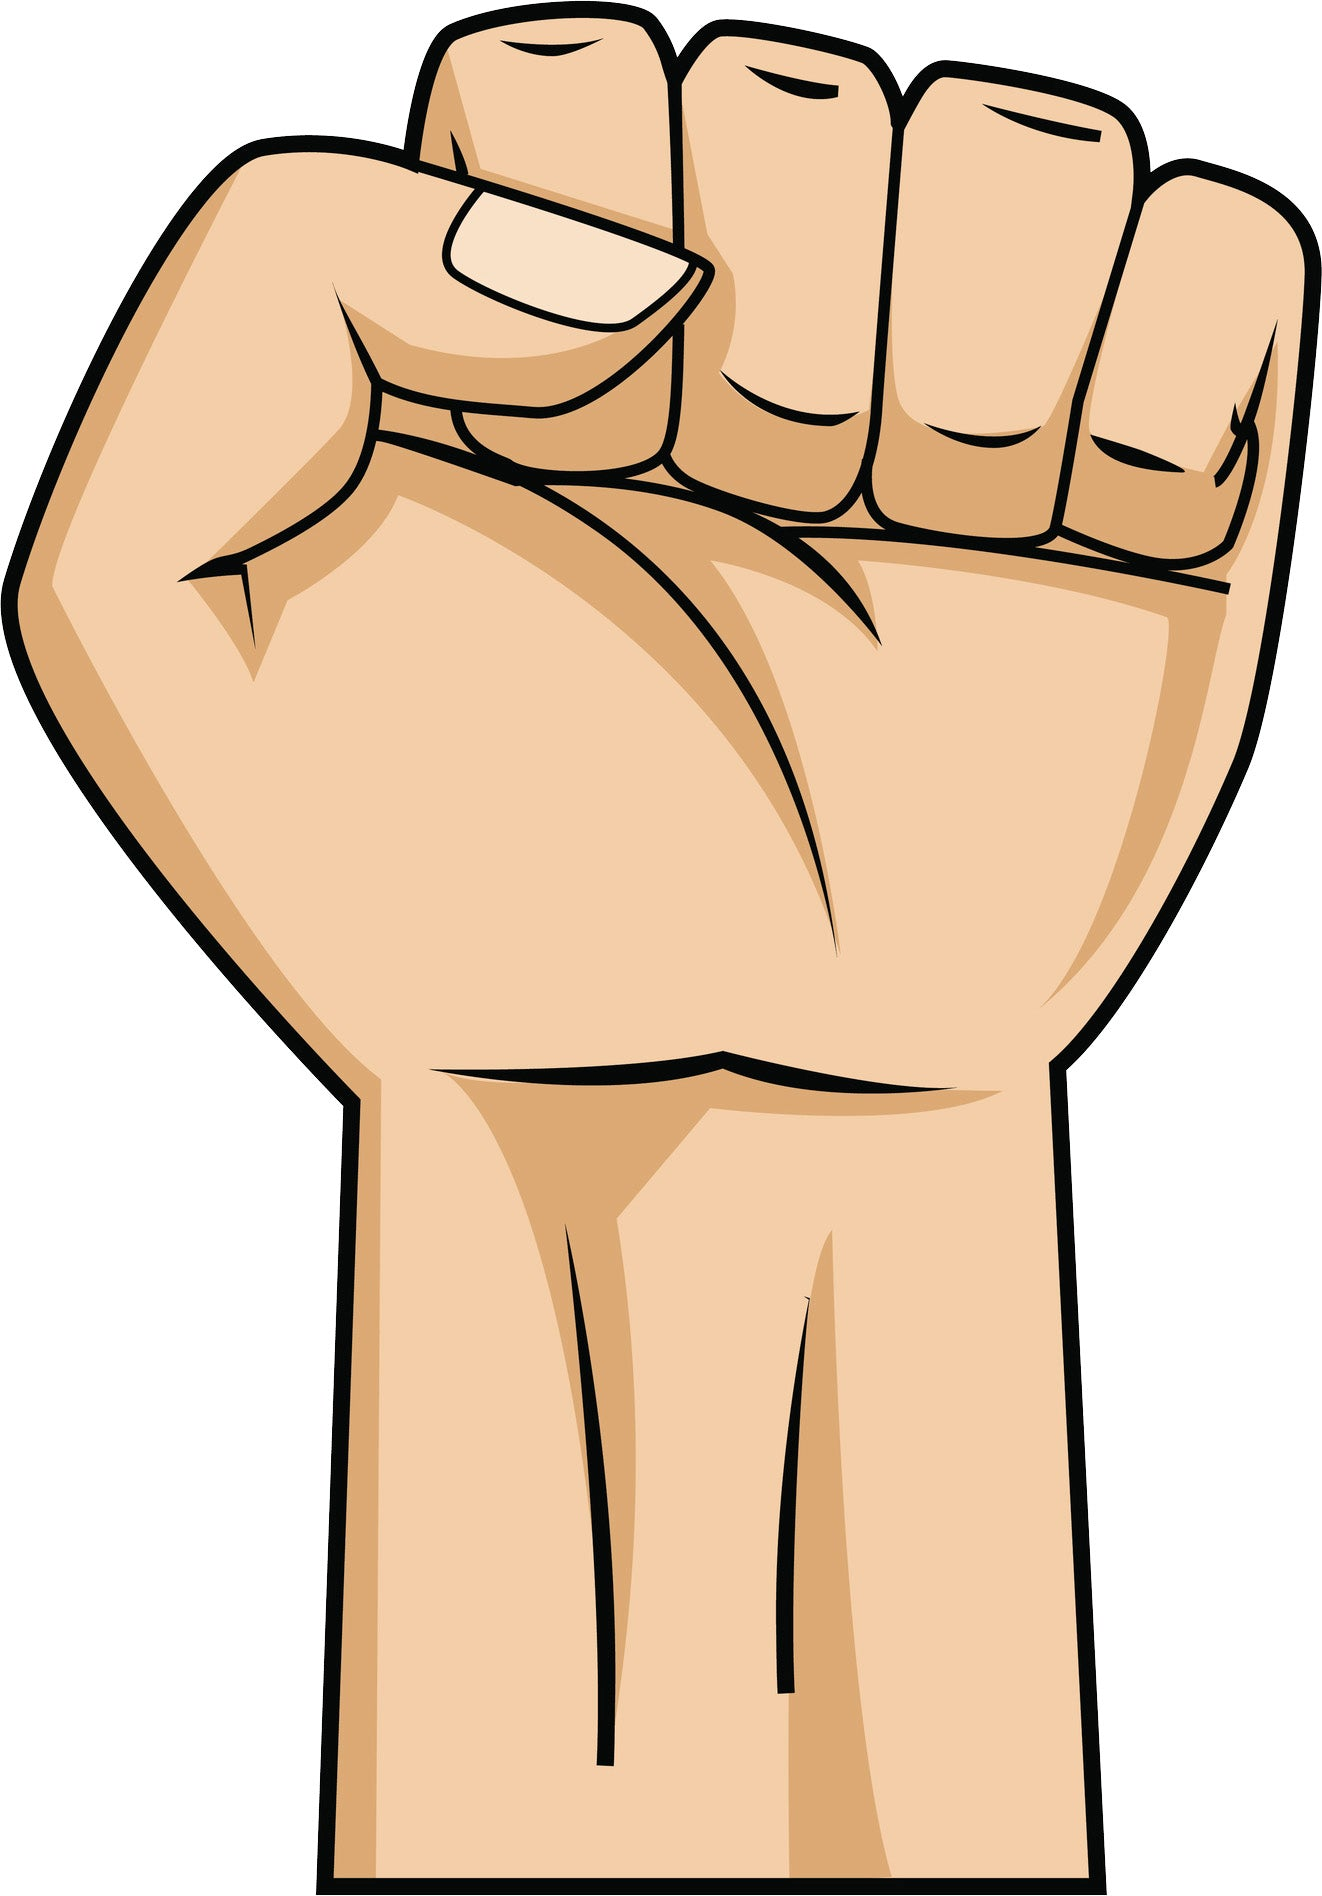 Power Fist Up Pump Cartoon Vinyl Decal Sticker